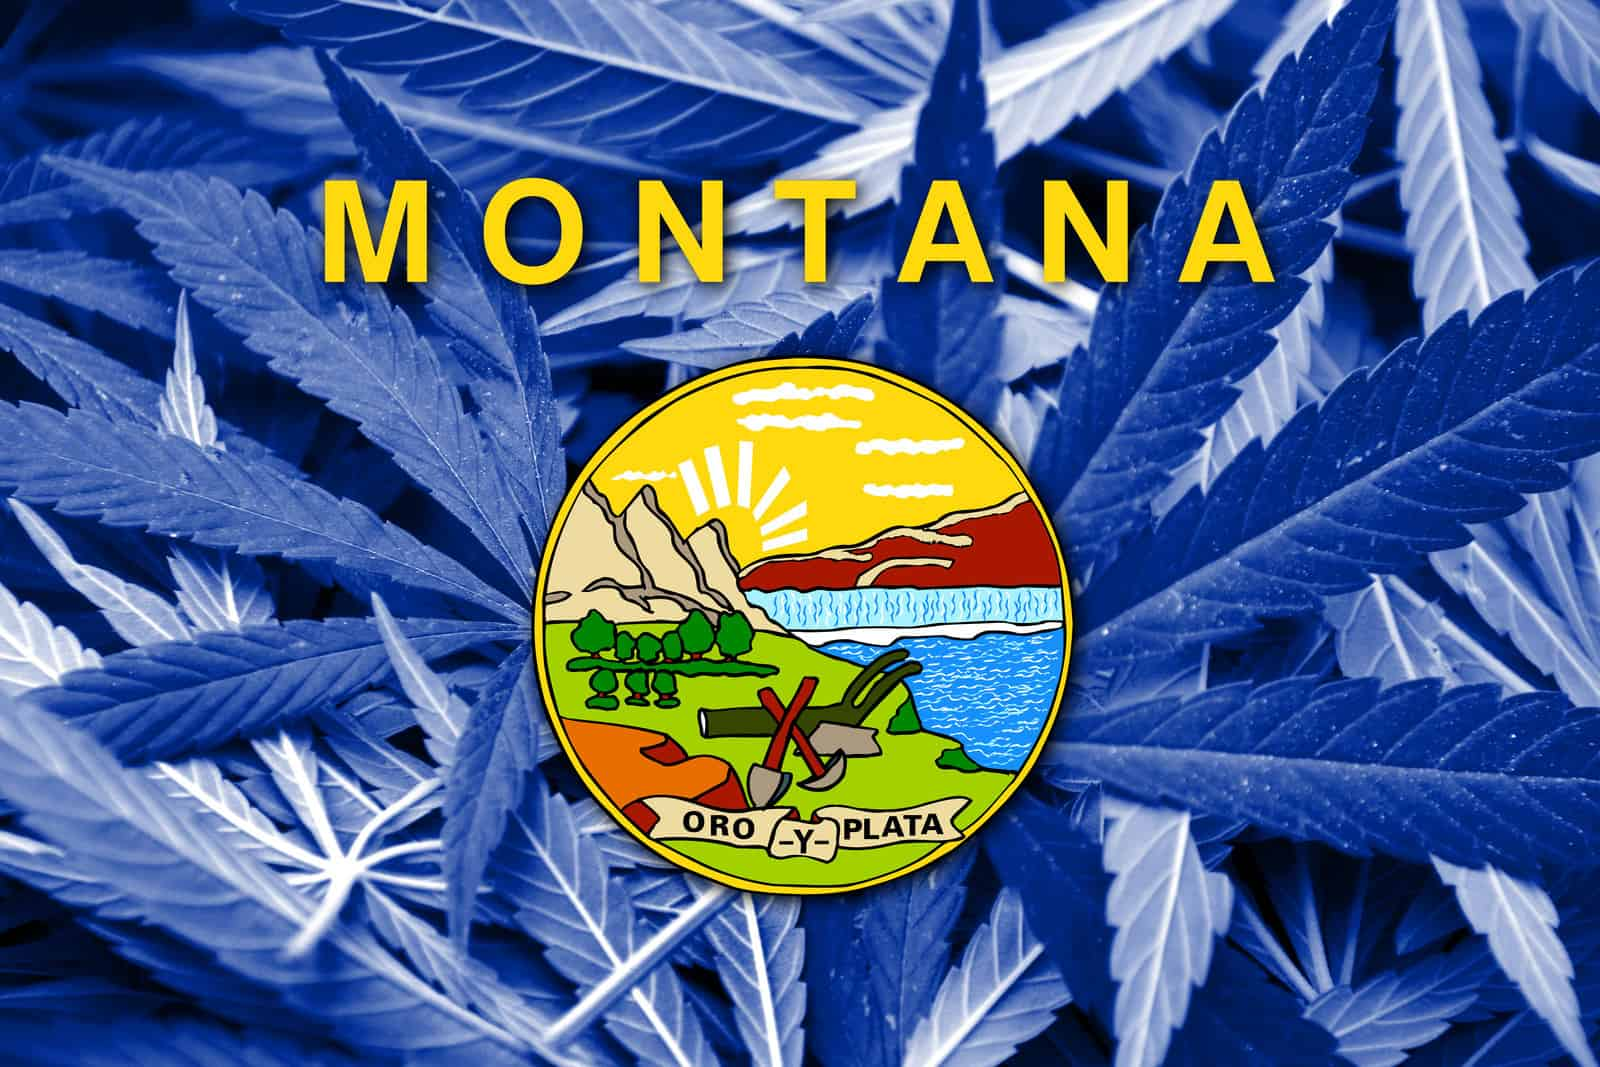 Is Cannabis Legal in Montana? Montana state sign.